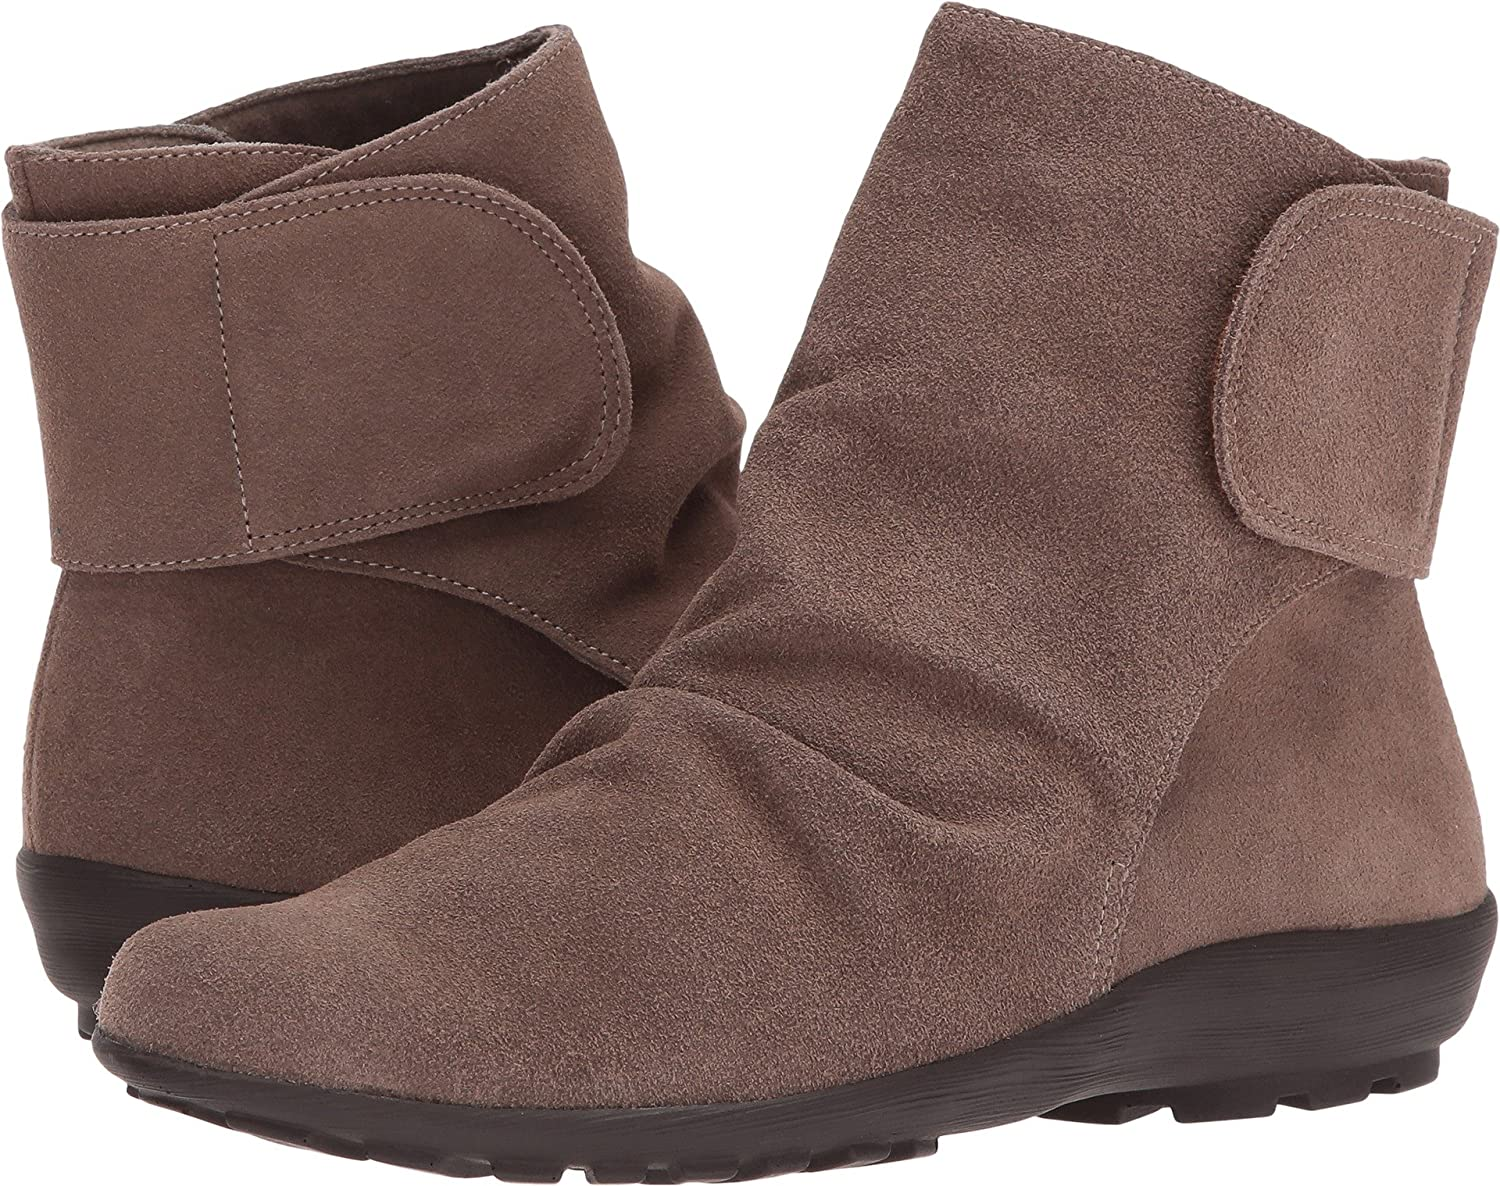 Walking Cradles Women's Harlow Ankle Boot B01MTCFW2A 10 B(M) US|Taupe Max Suede